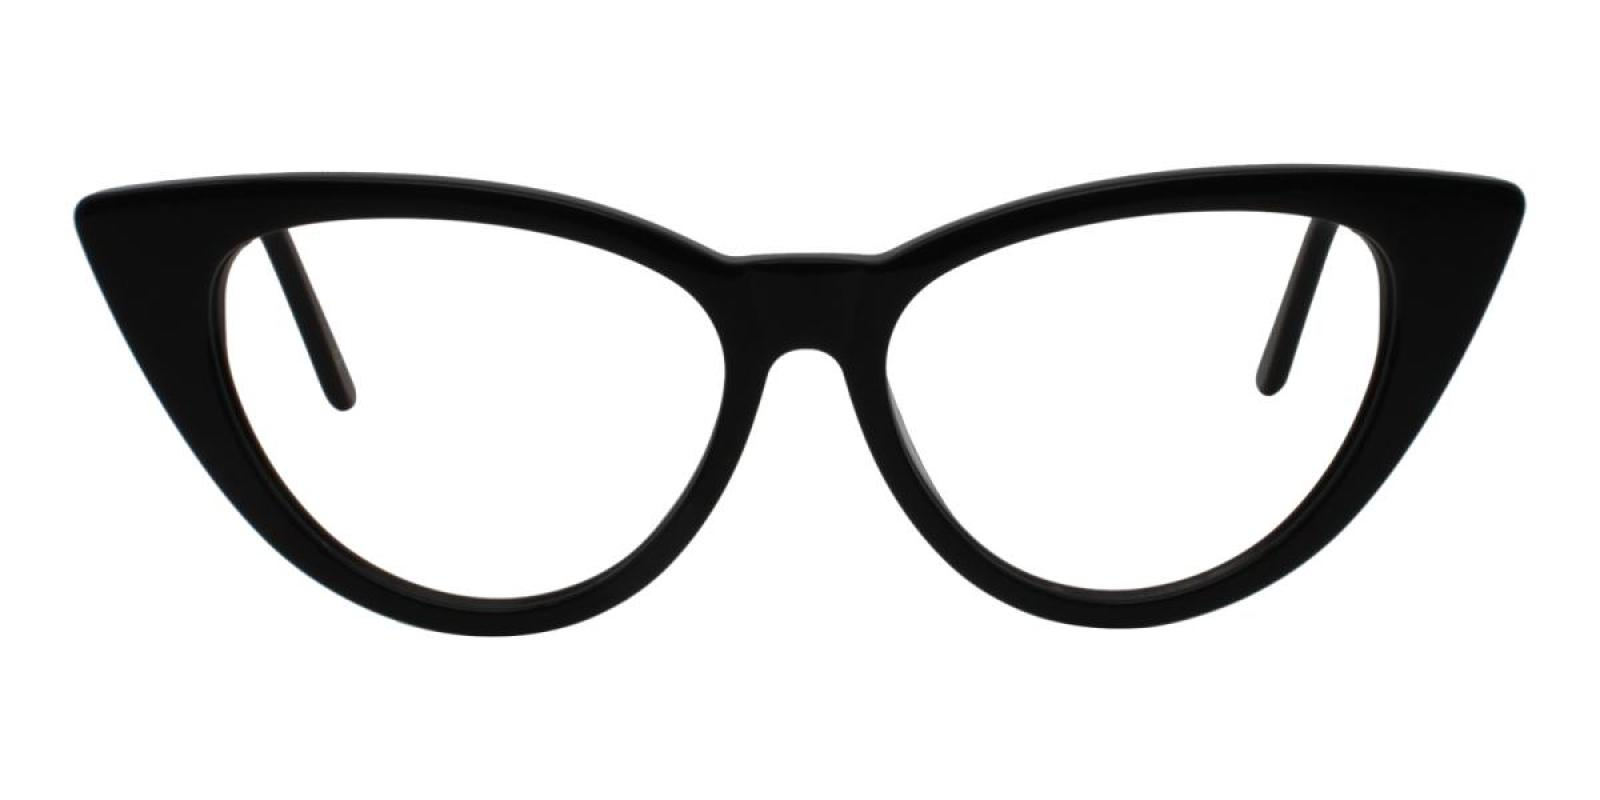 Charm-Black-Cat-Acetate-Eyeglasses-additional2